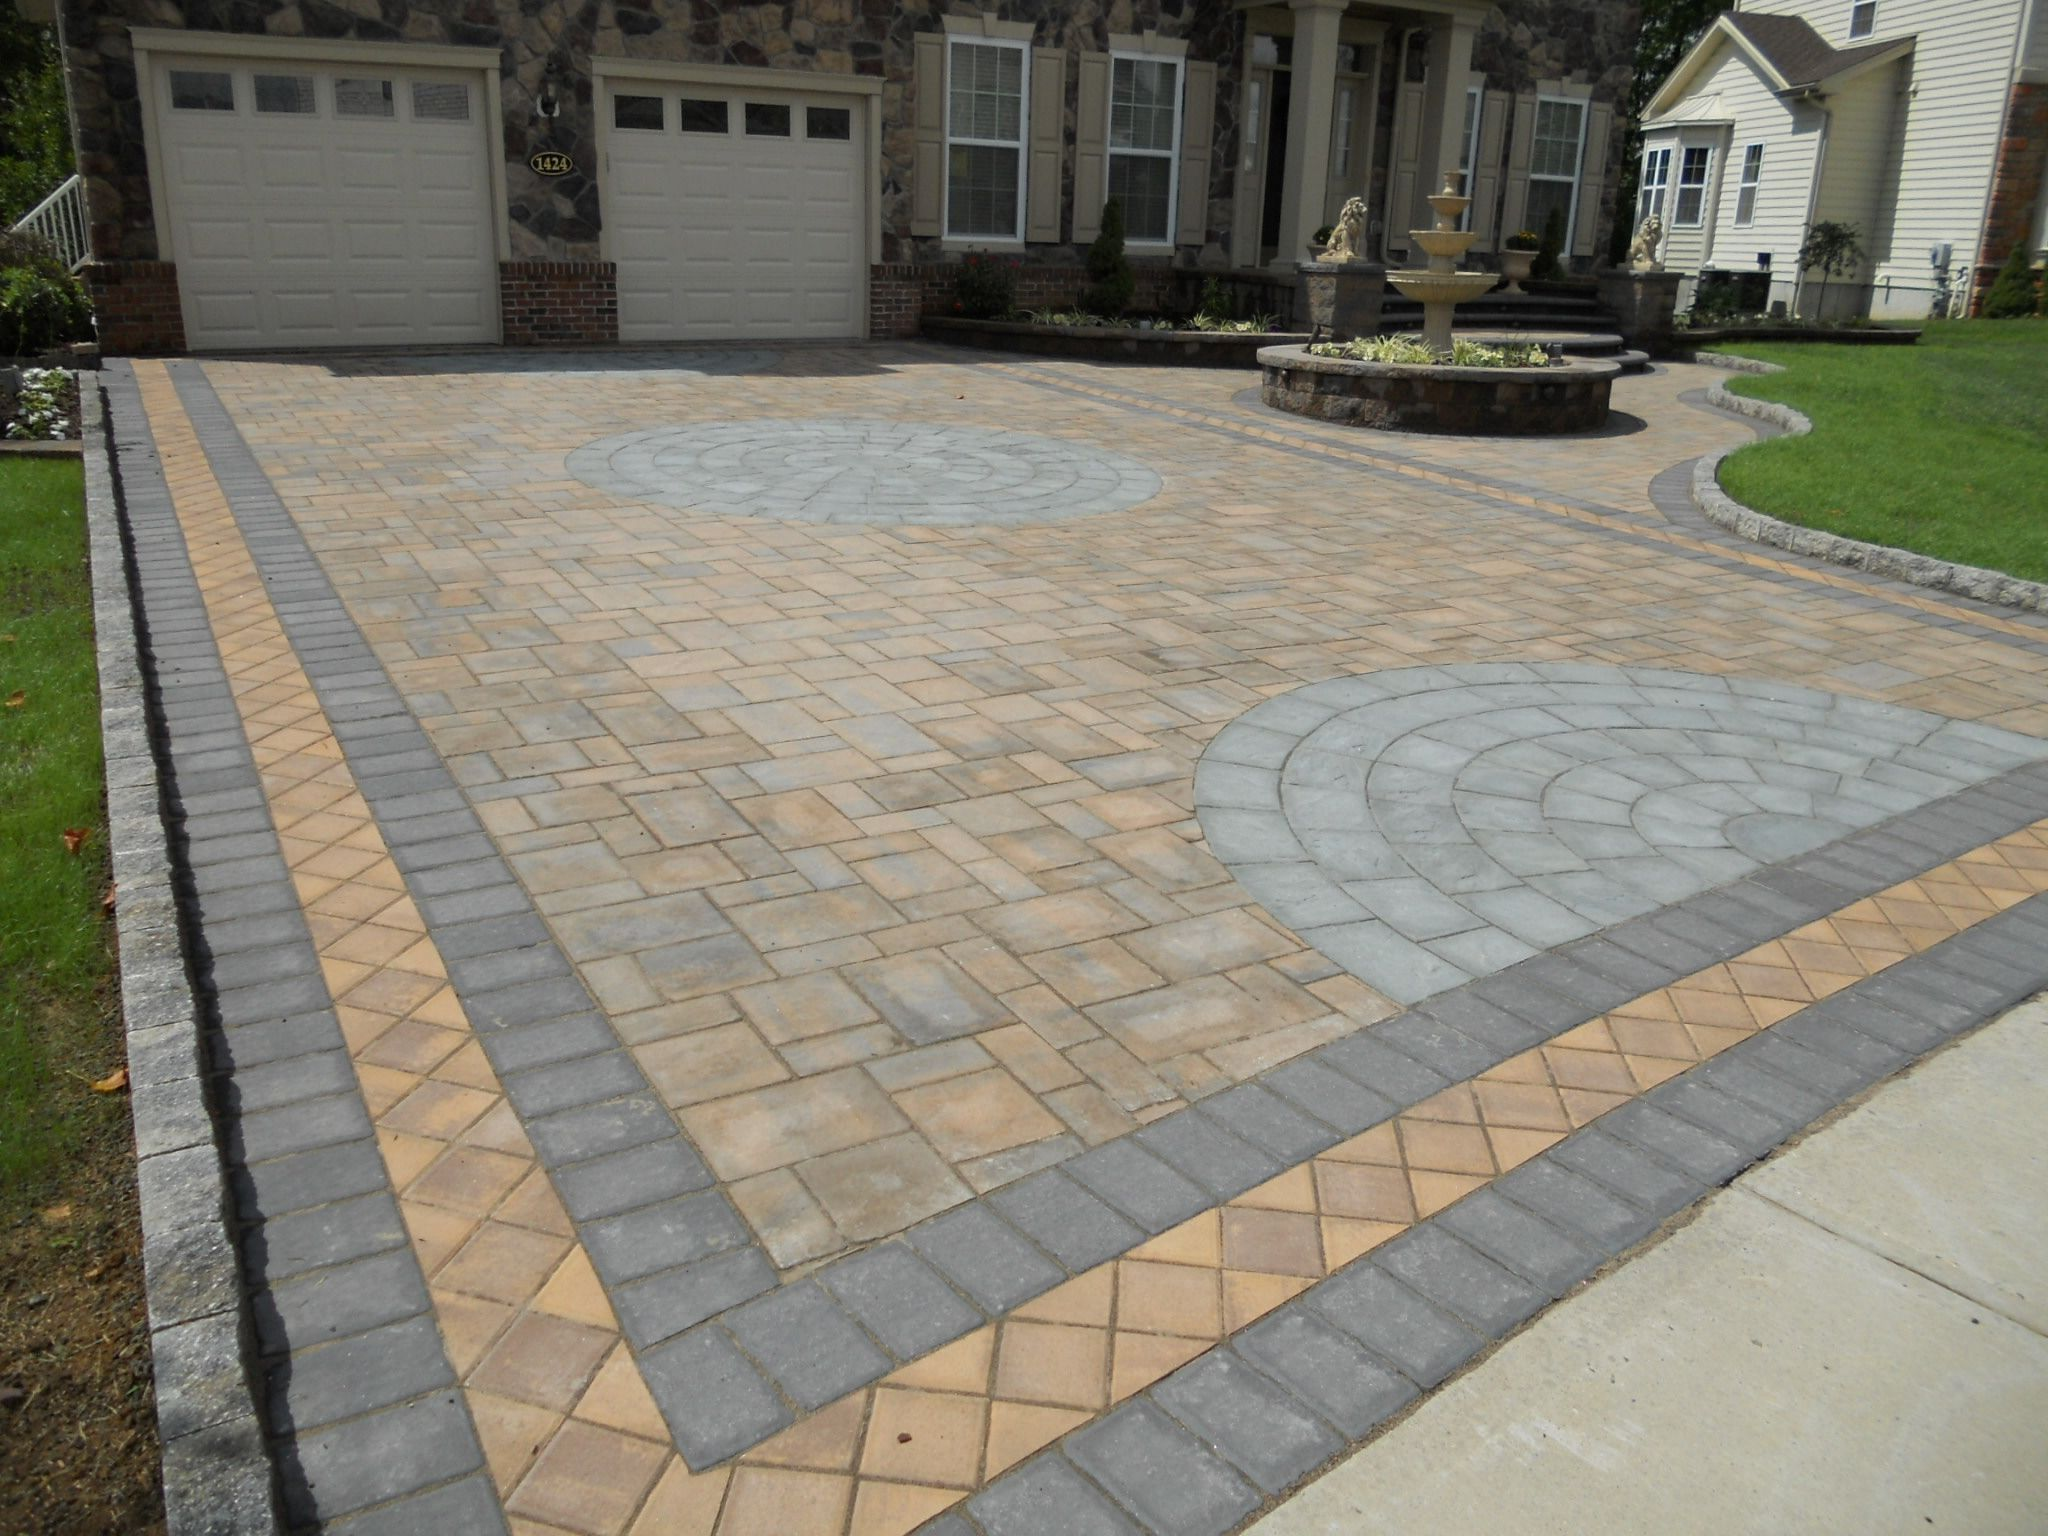 Cambridge pavingstones wall systems color options - A Pavingstone Driveway With Cambridge Pavingstones With Armortec Will Not Only Increase Your Curb Appeal It S A Durable Low Maintenance Driveway Option